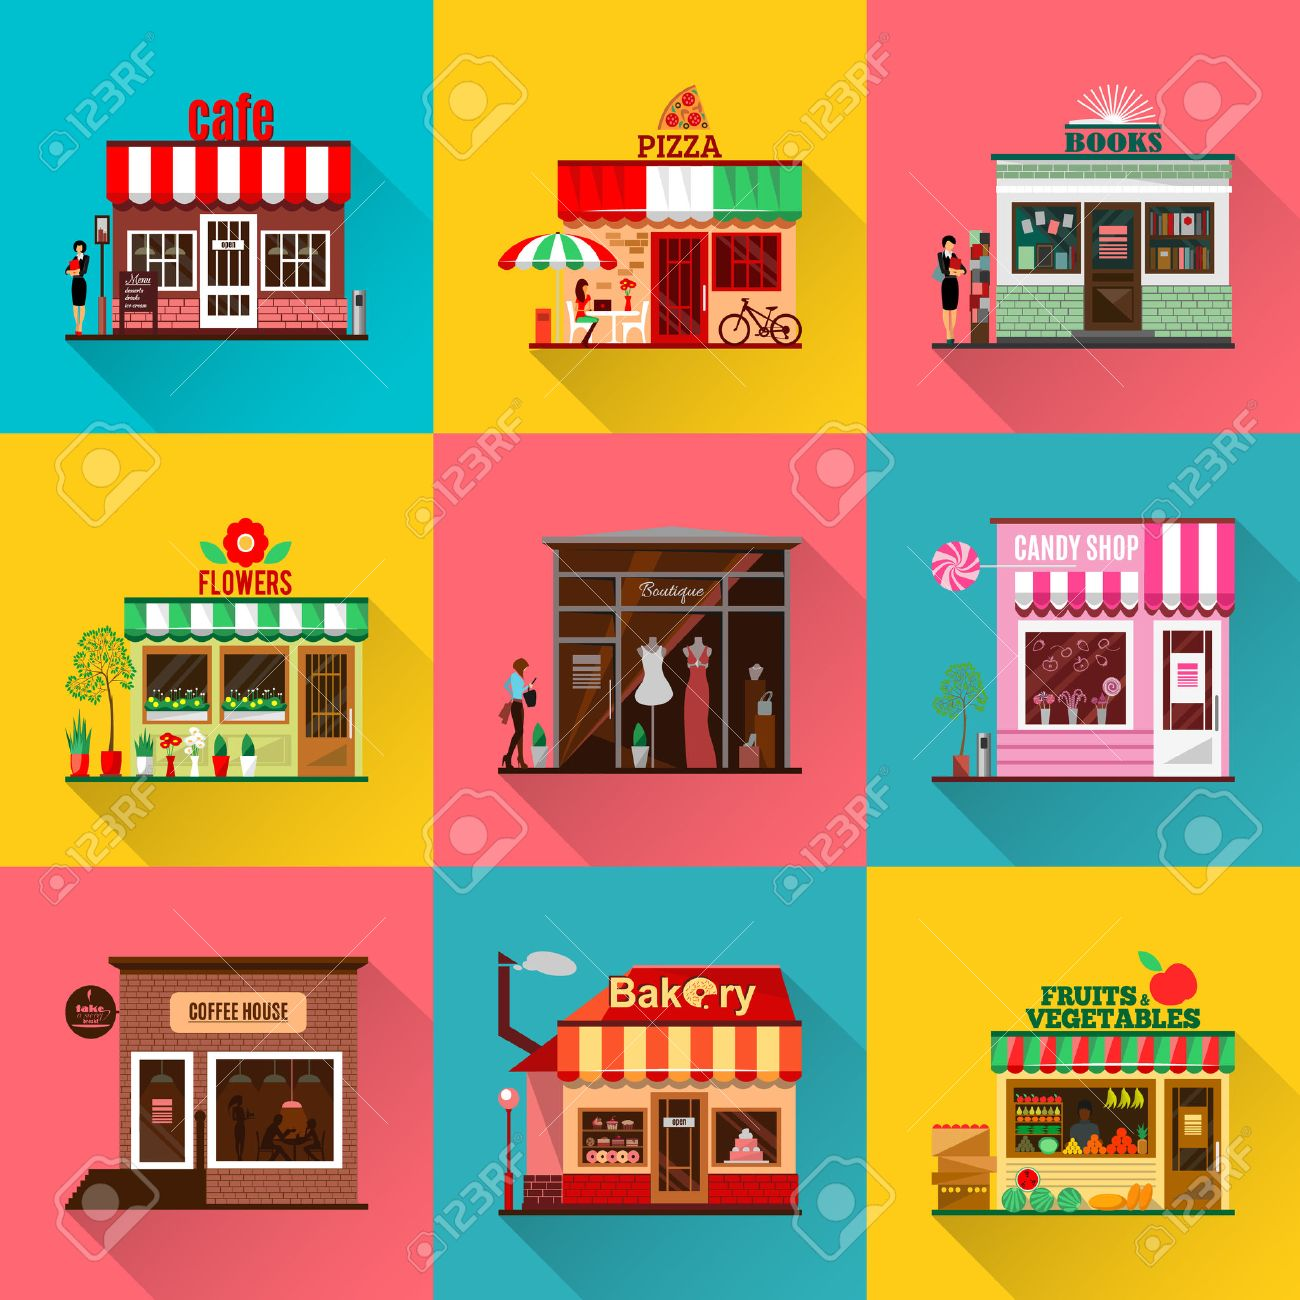 Set Of Flat Shop Building Facades Icons Vector Illustration Royalty Free Cliparts Vectors And Stock Illustration Image 55298518